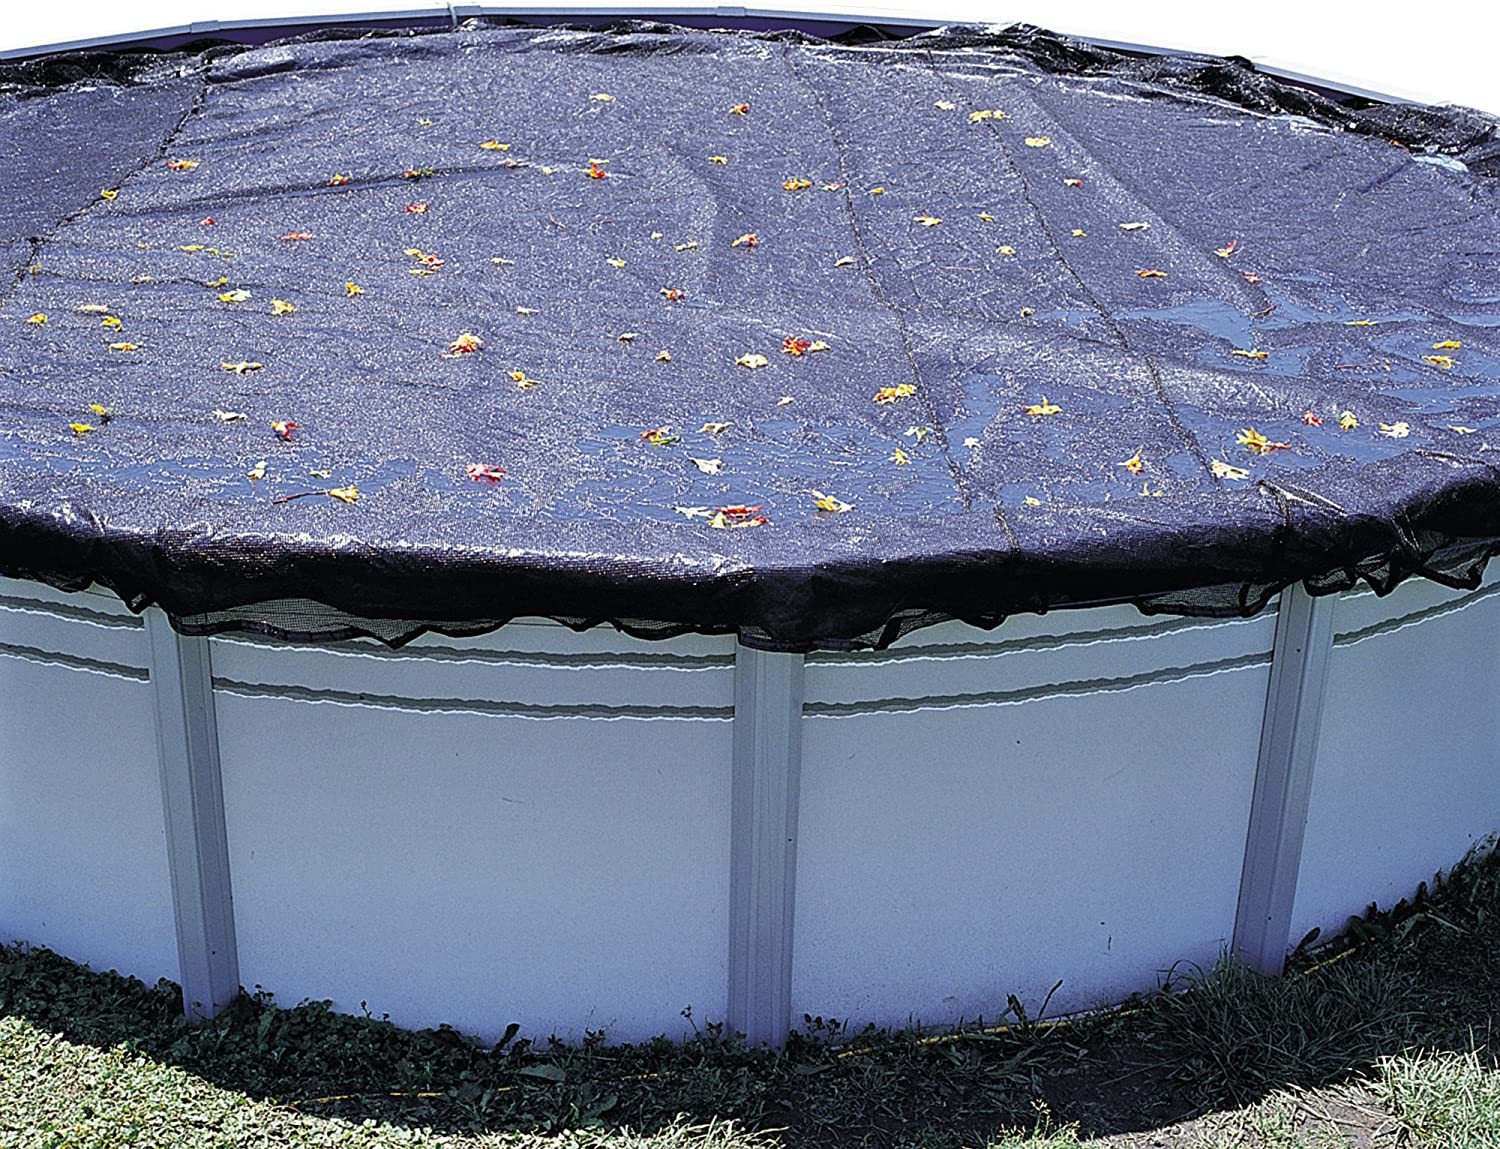 In The Swim 18 Foot Round Above Ground Pool Leaf Net Cover : Swimming Pool Covers : Garden & Outdoor